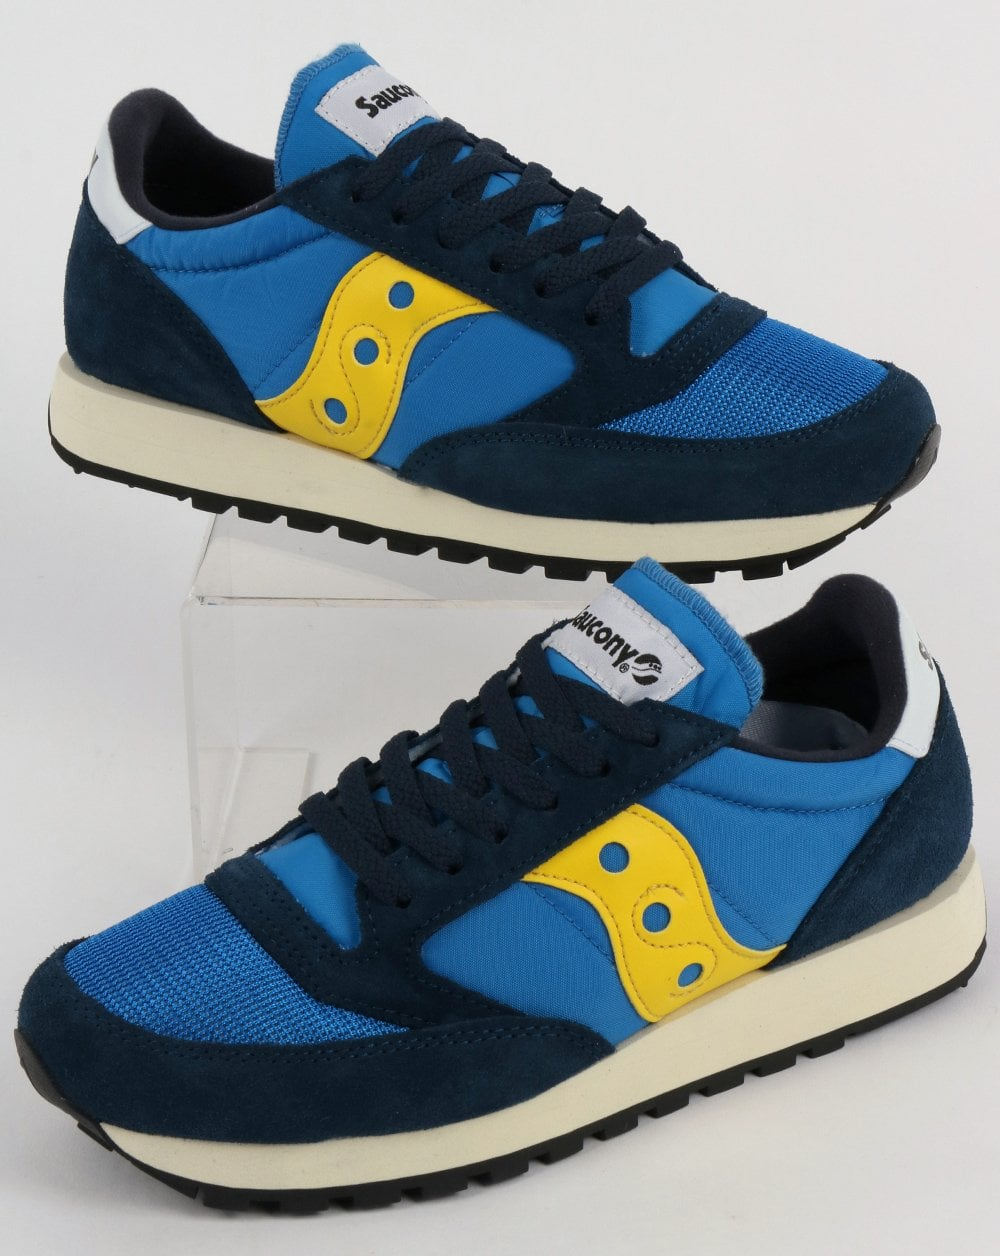 buy online 27515 468a3 Saucony Jazz Original Vintage Trainers Blue/Yellow